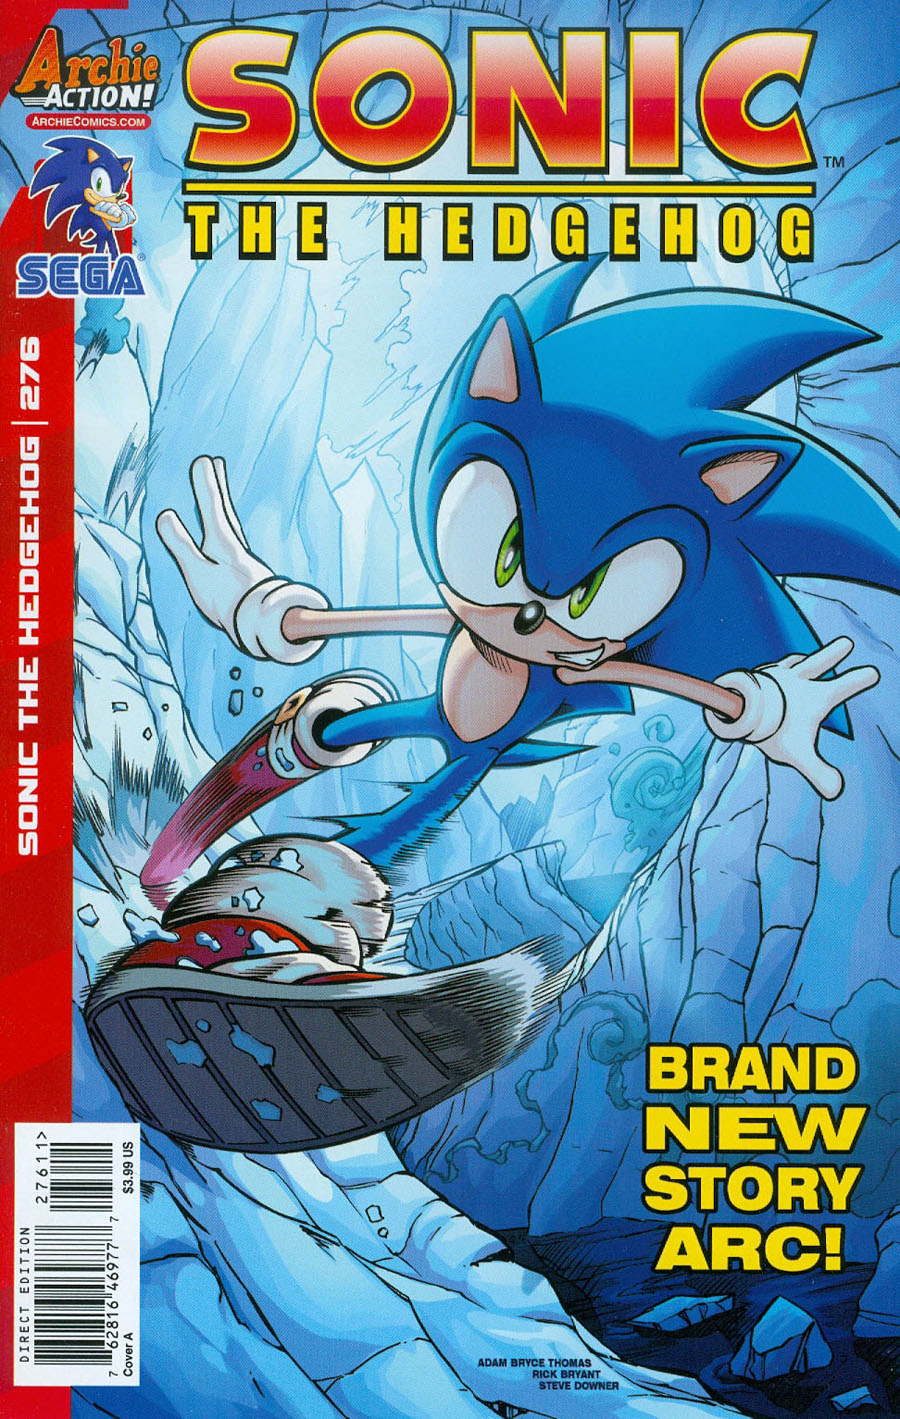 Sonic The Hedgehog Vol 2 #276 Cover A Regular Adam Bryce Thomas Cover